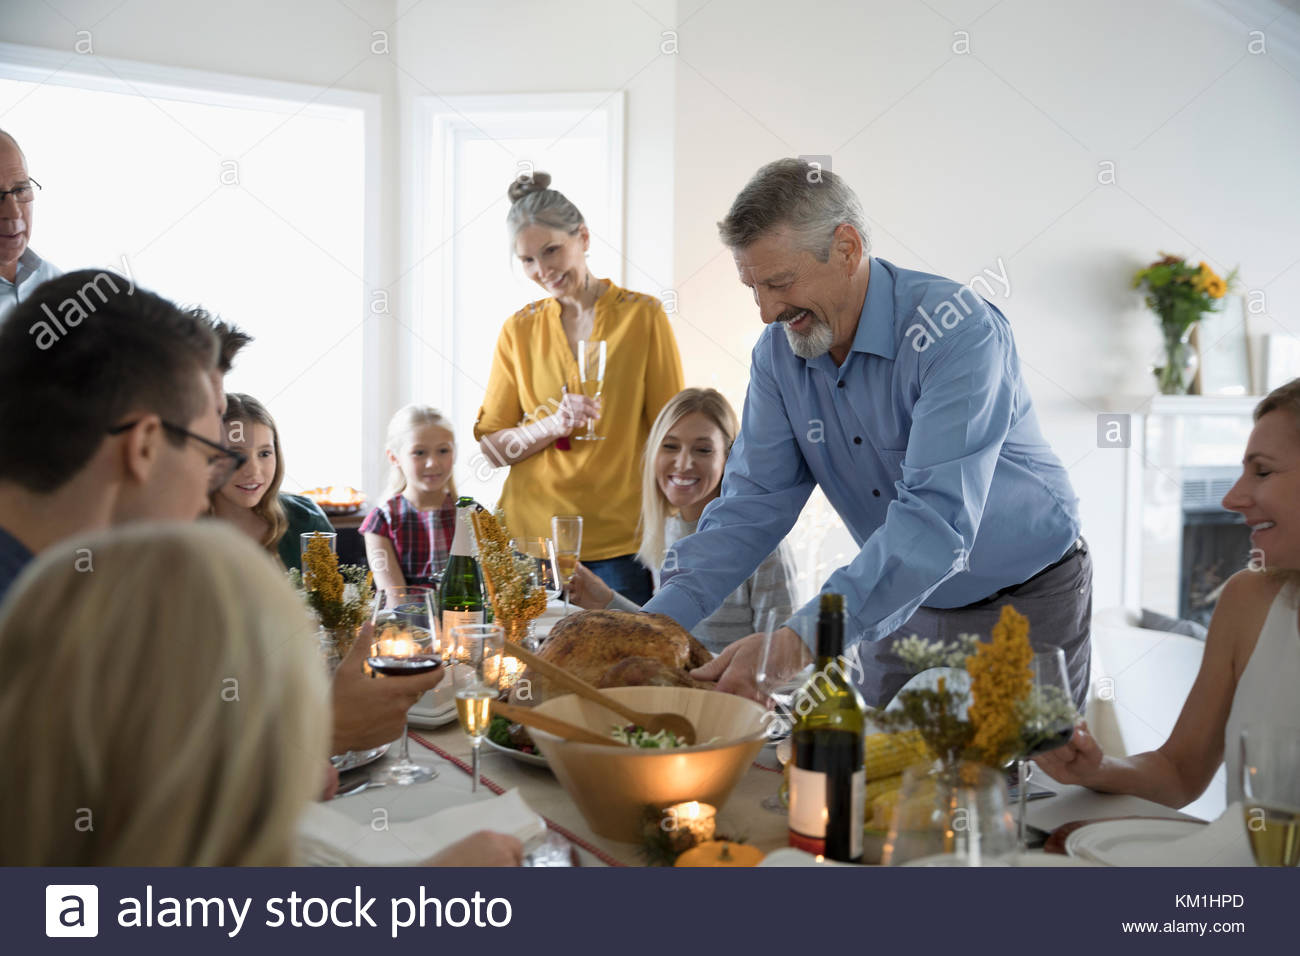 Man serving Thanksgiving turkey to family and friends at dinner table - Stock Image